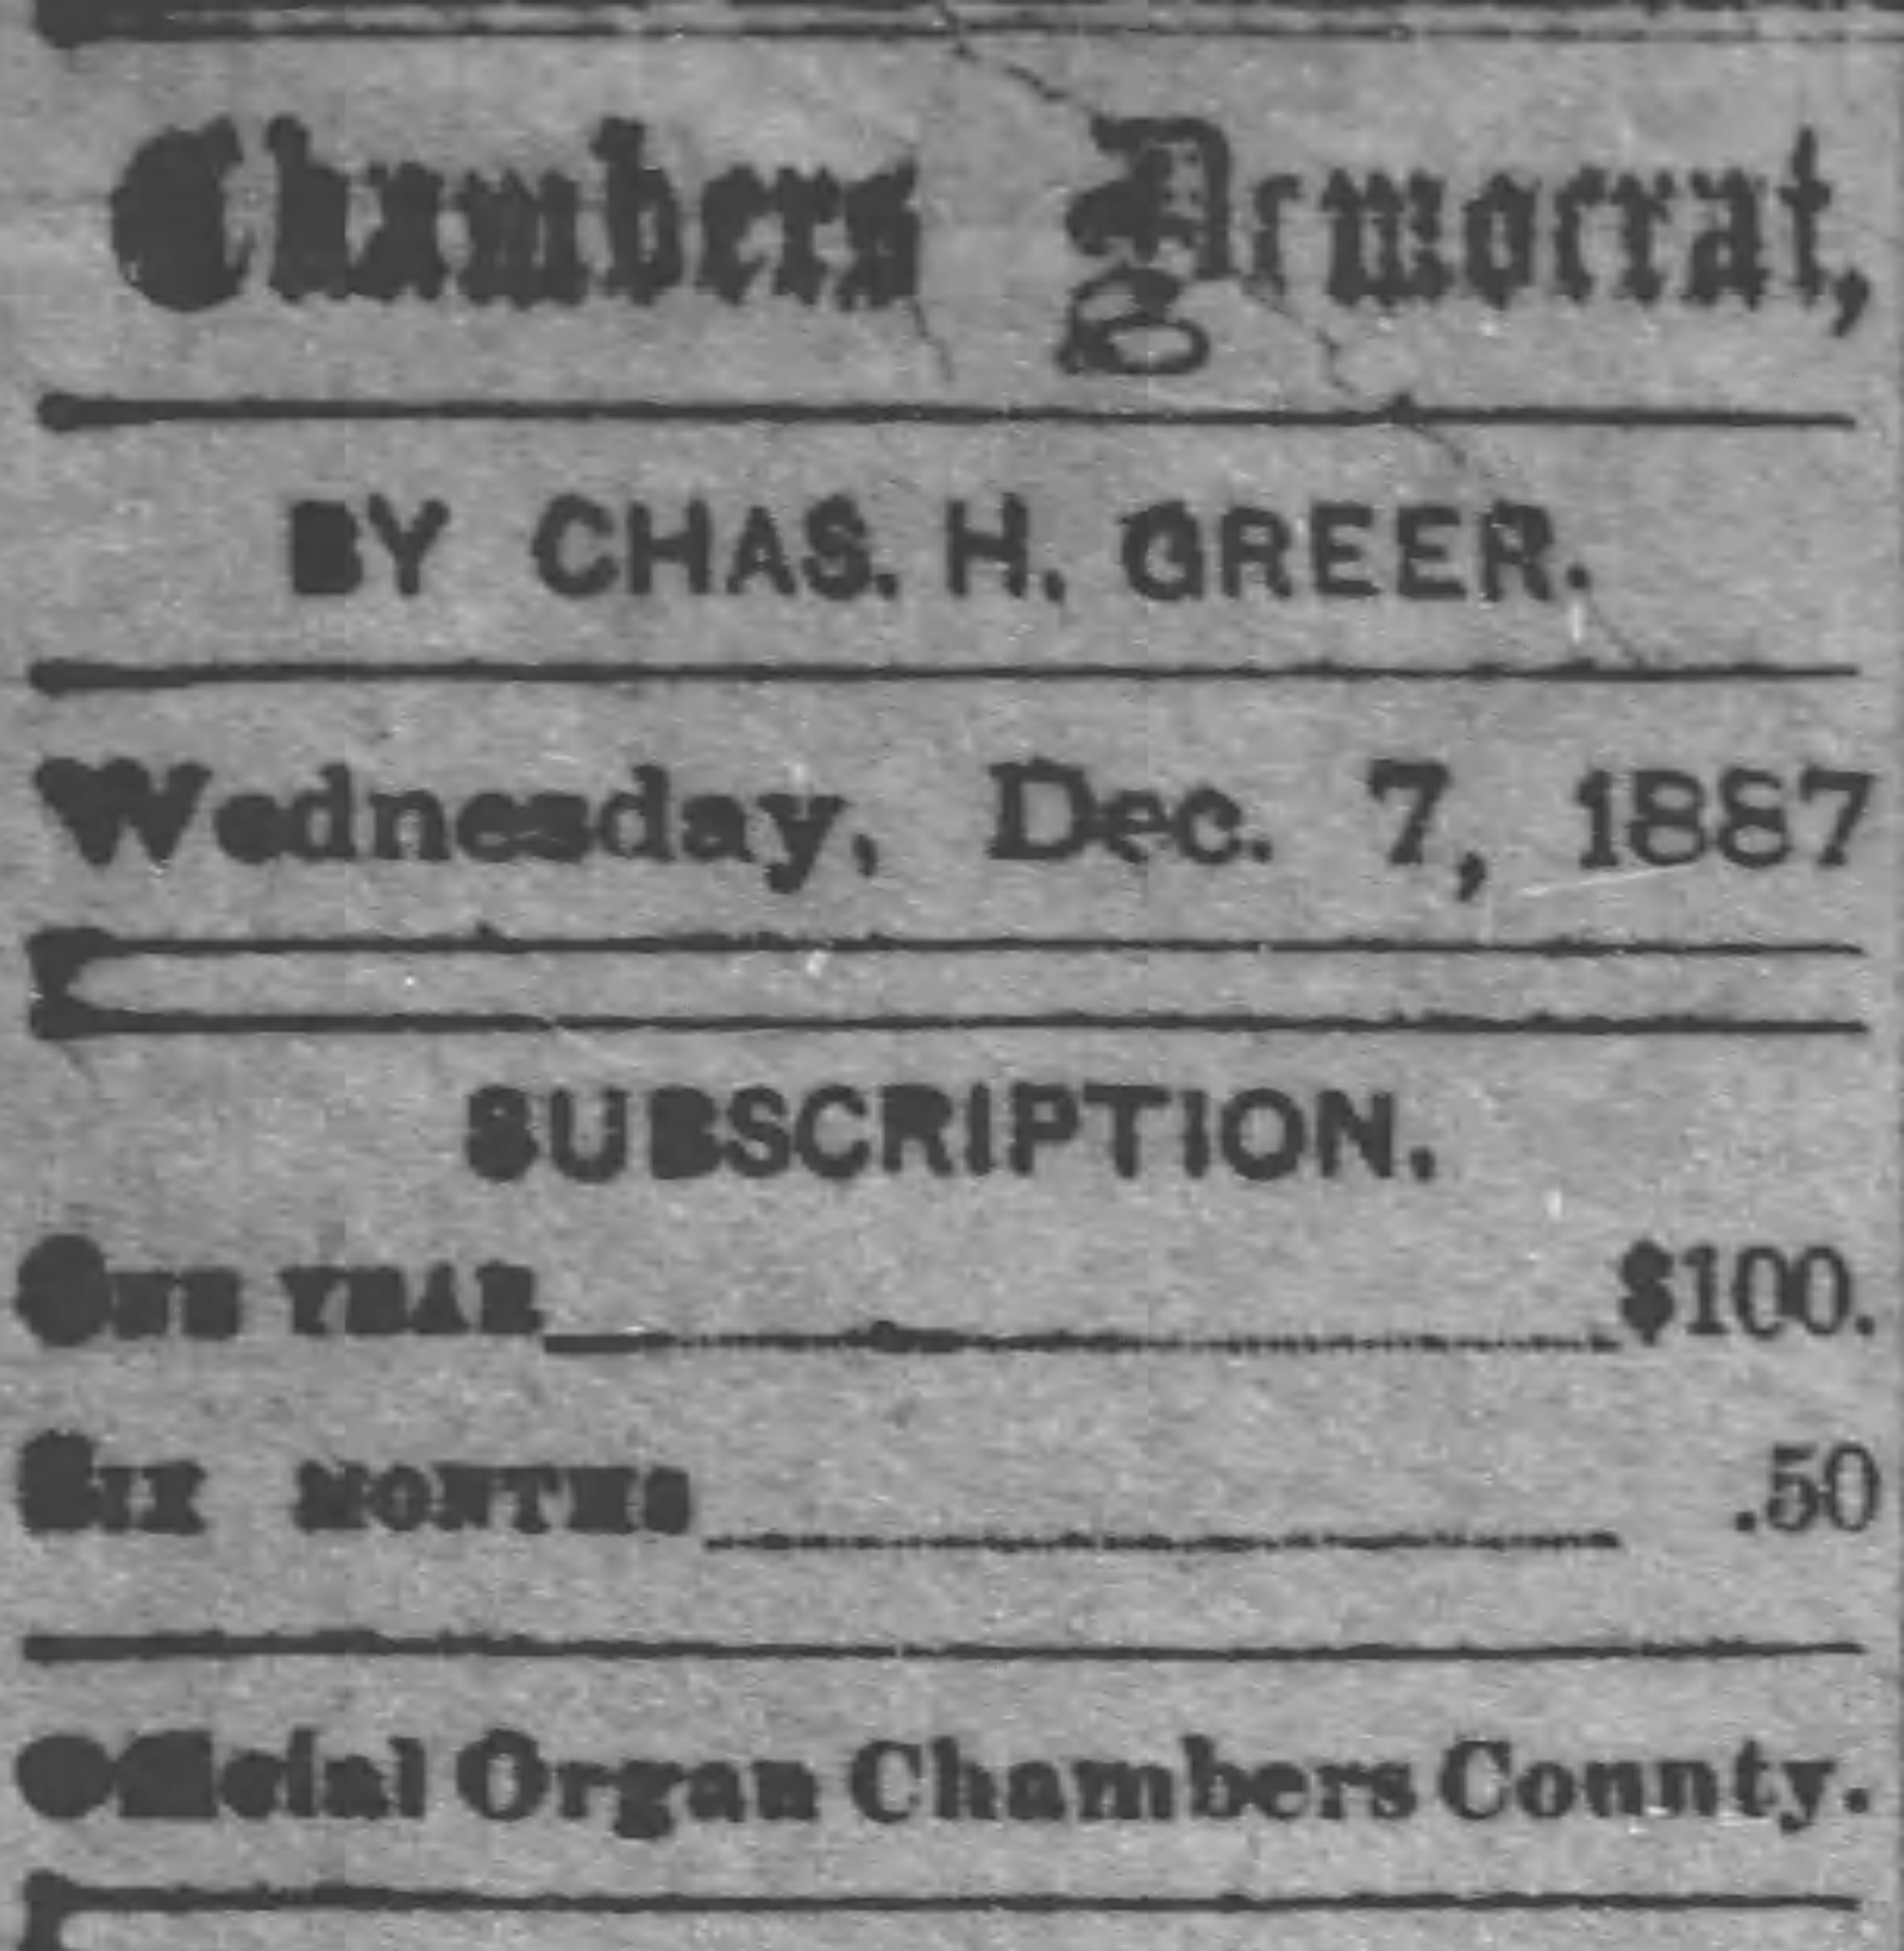 PATRON – Many citizens of LaFayette, Chambers County, Alabama in 1887 are named in these newspaper excerpts